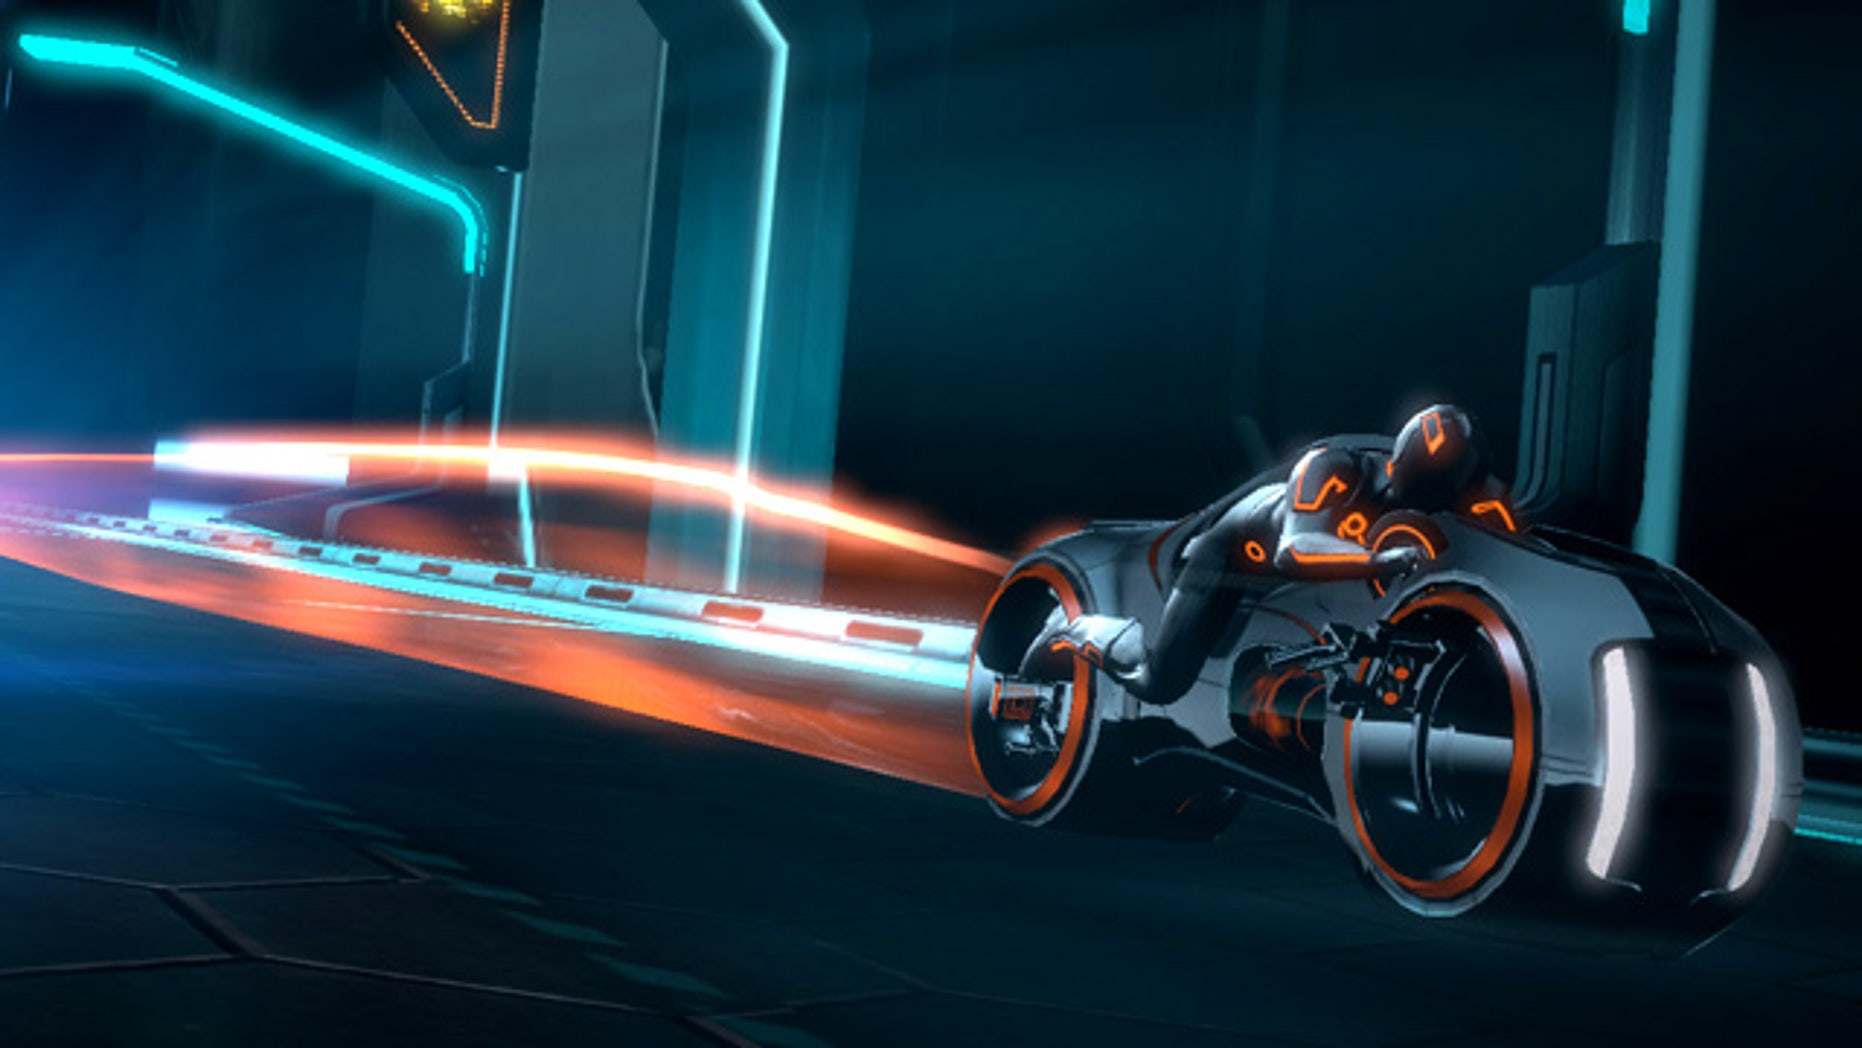 A screenshot from the Tron: Legacy videogame